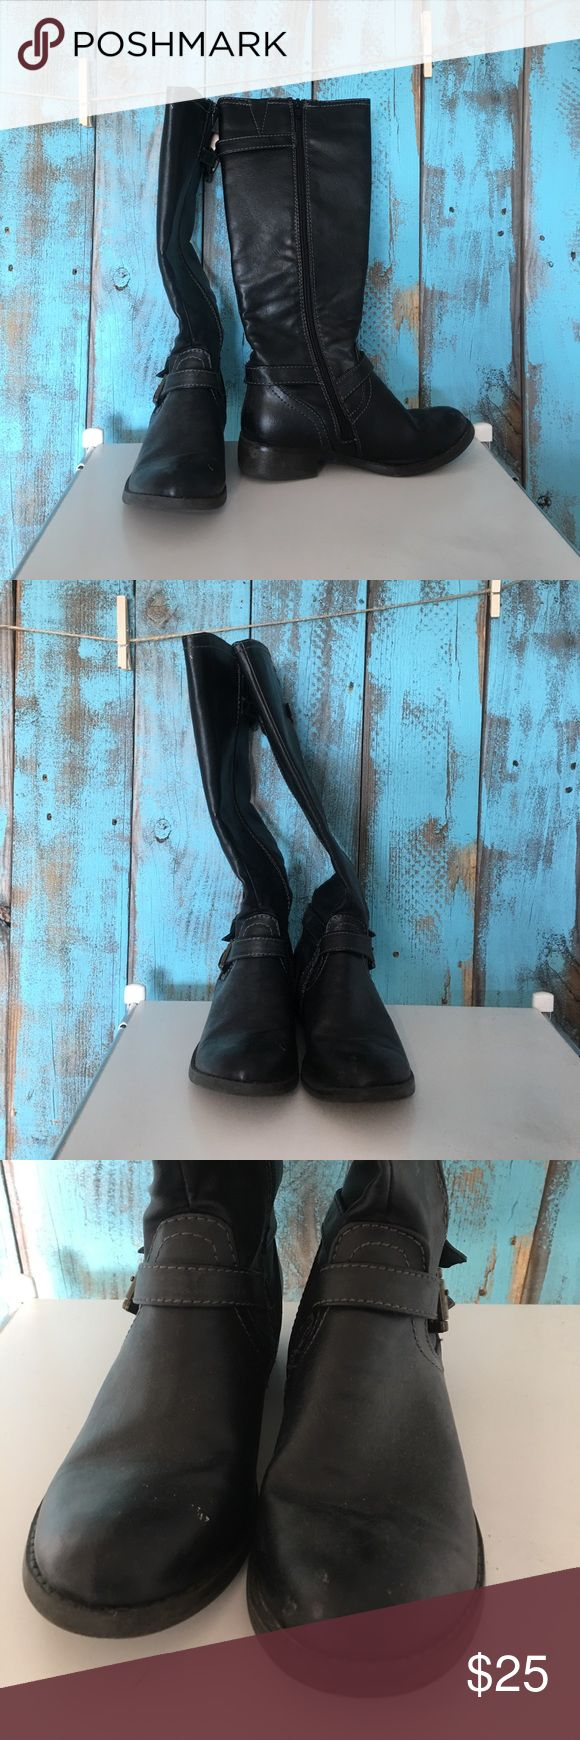 EUC 💫 women's zip up boot 💫 size 7 EXCELLENT used condition. Refer to pics to see the MINIMAL wear. No rips, stains or tears!   🚭Smoke free home 🐶🐱 Pet free home 💰All offers considered, use the offers tab only ➡️⬅️ No trades 📦📬 Fast shipping Shoes Winter & Rain Boots